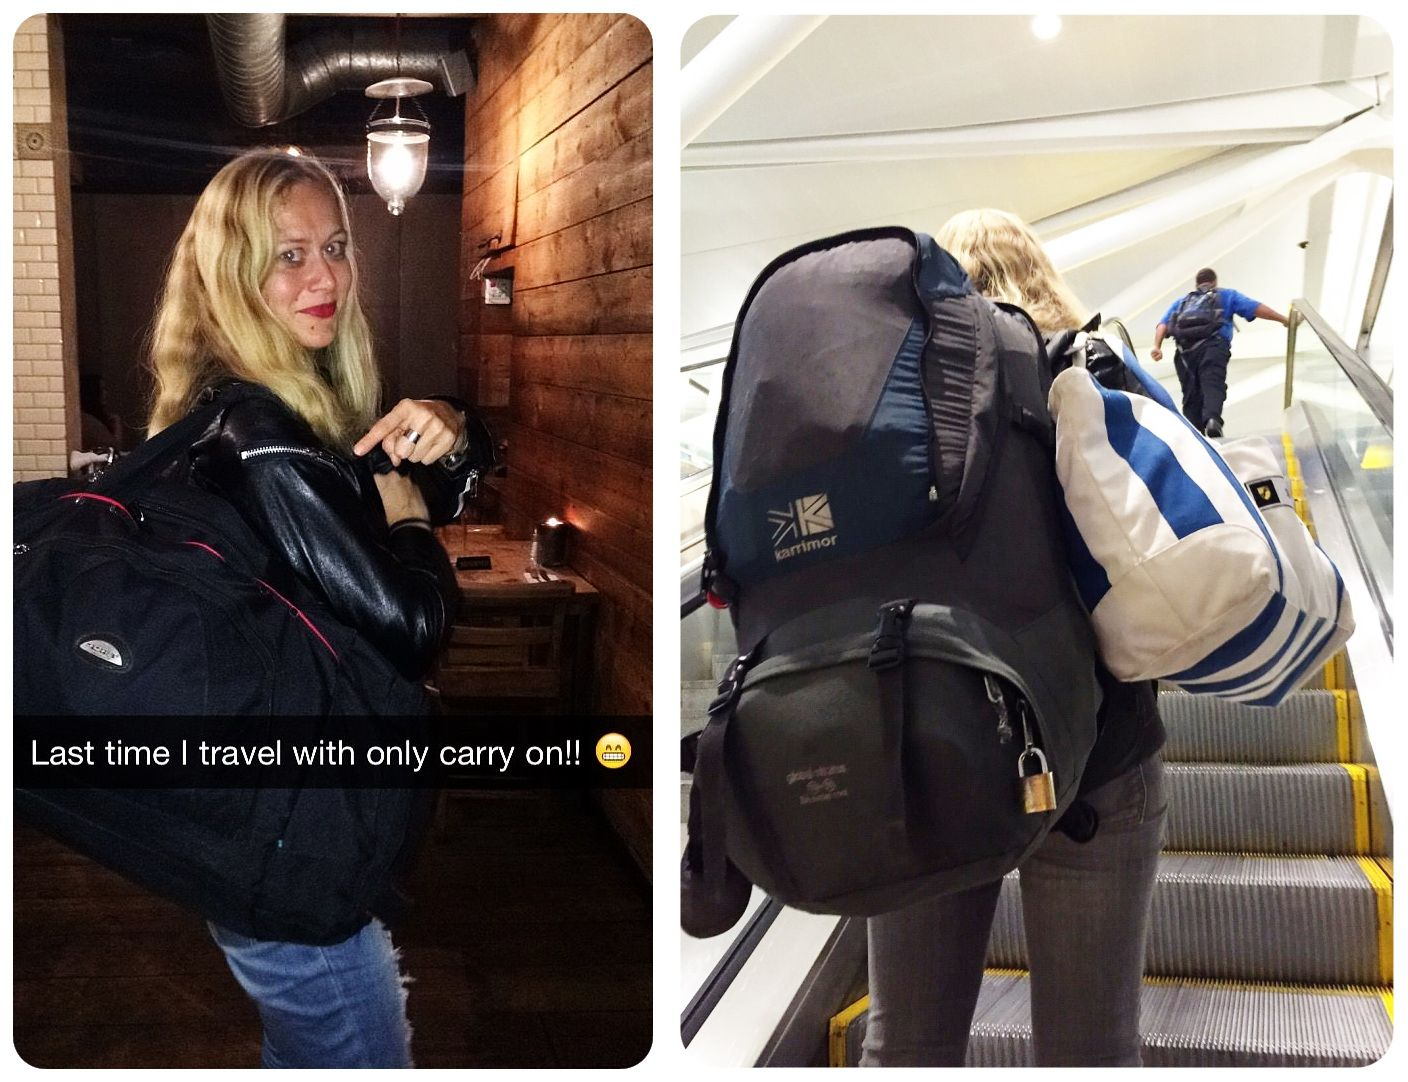 carry on vs backpack